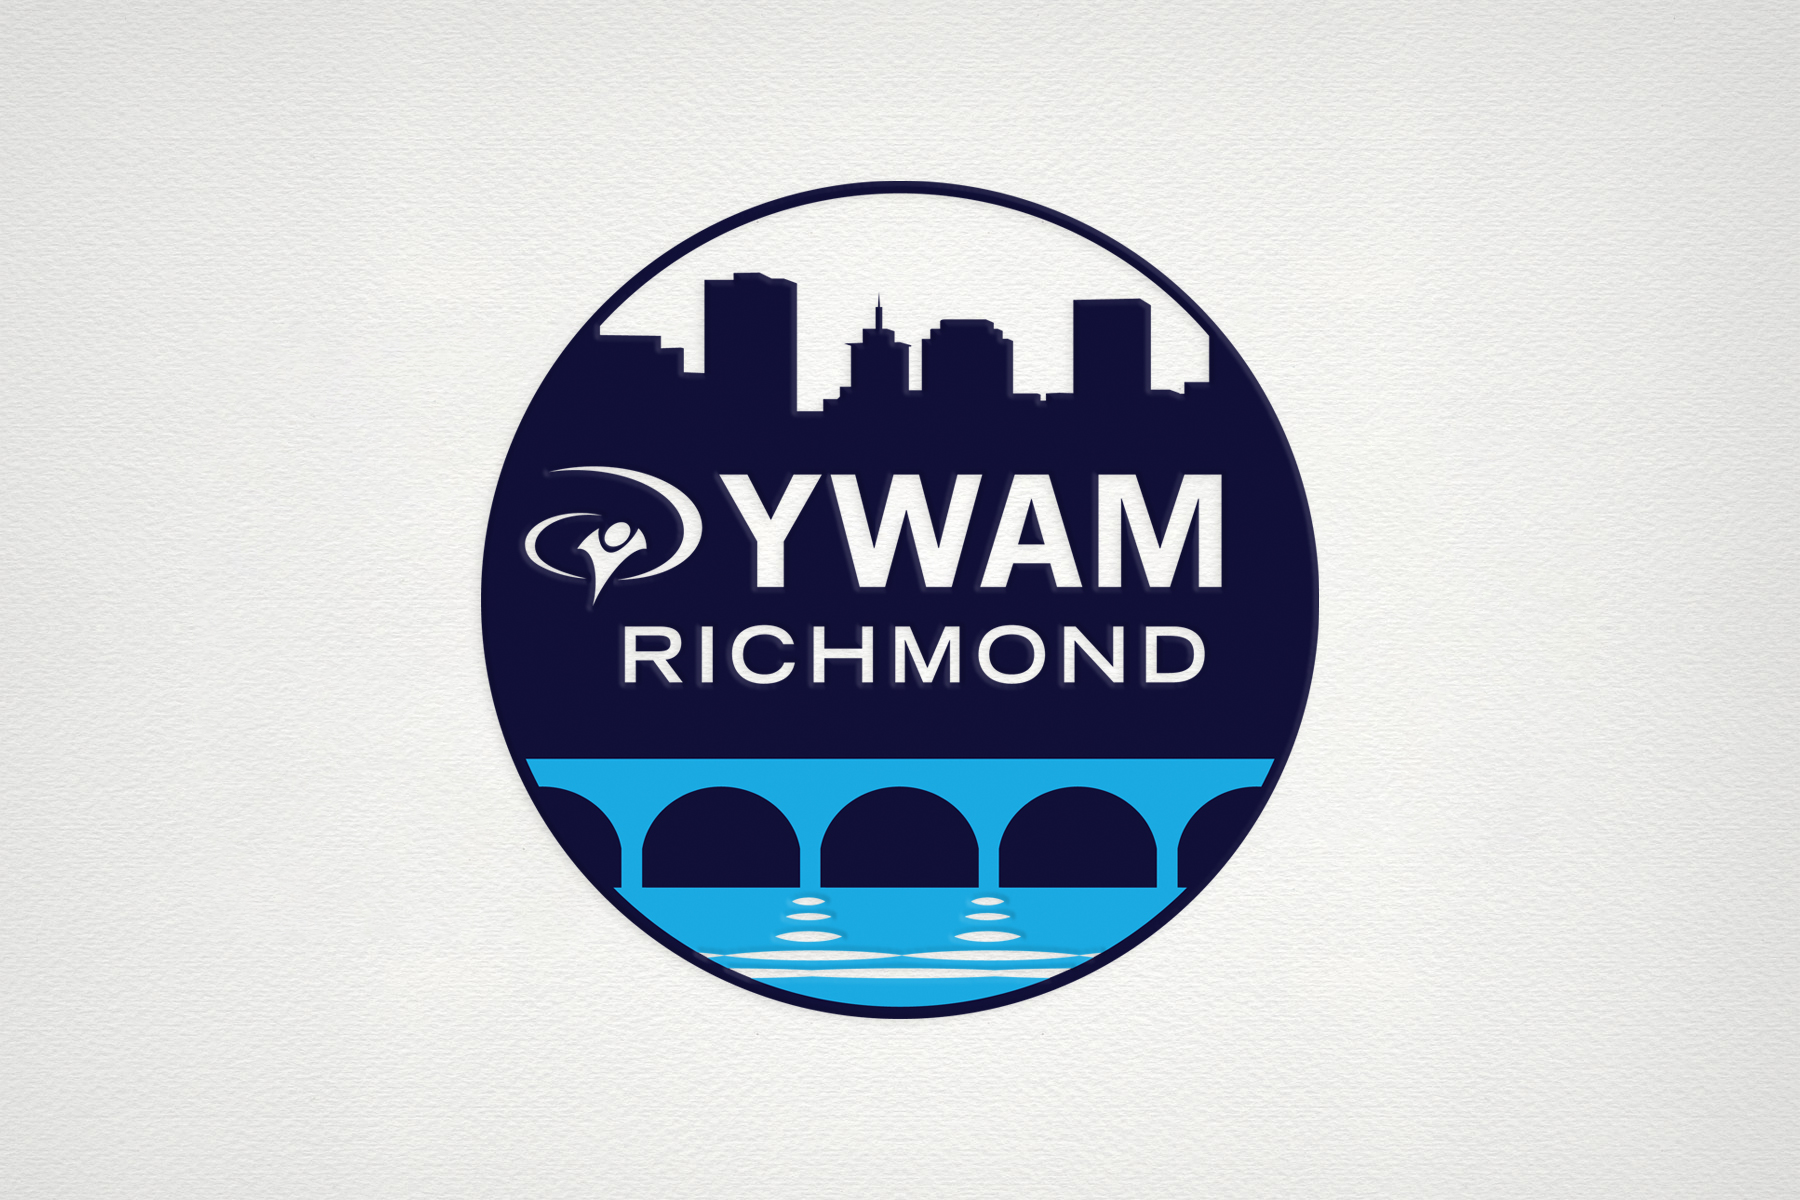 Logos Ywam Richmond